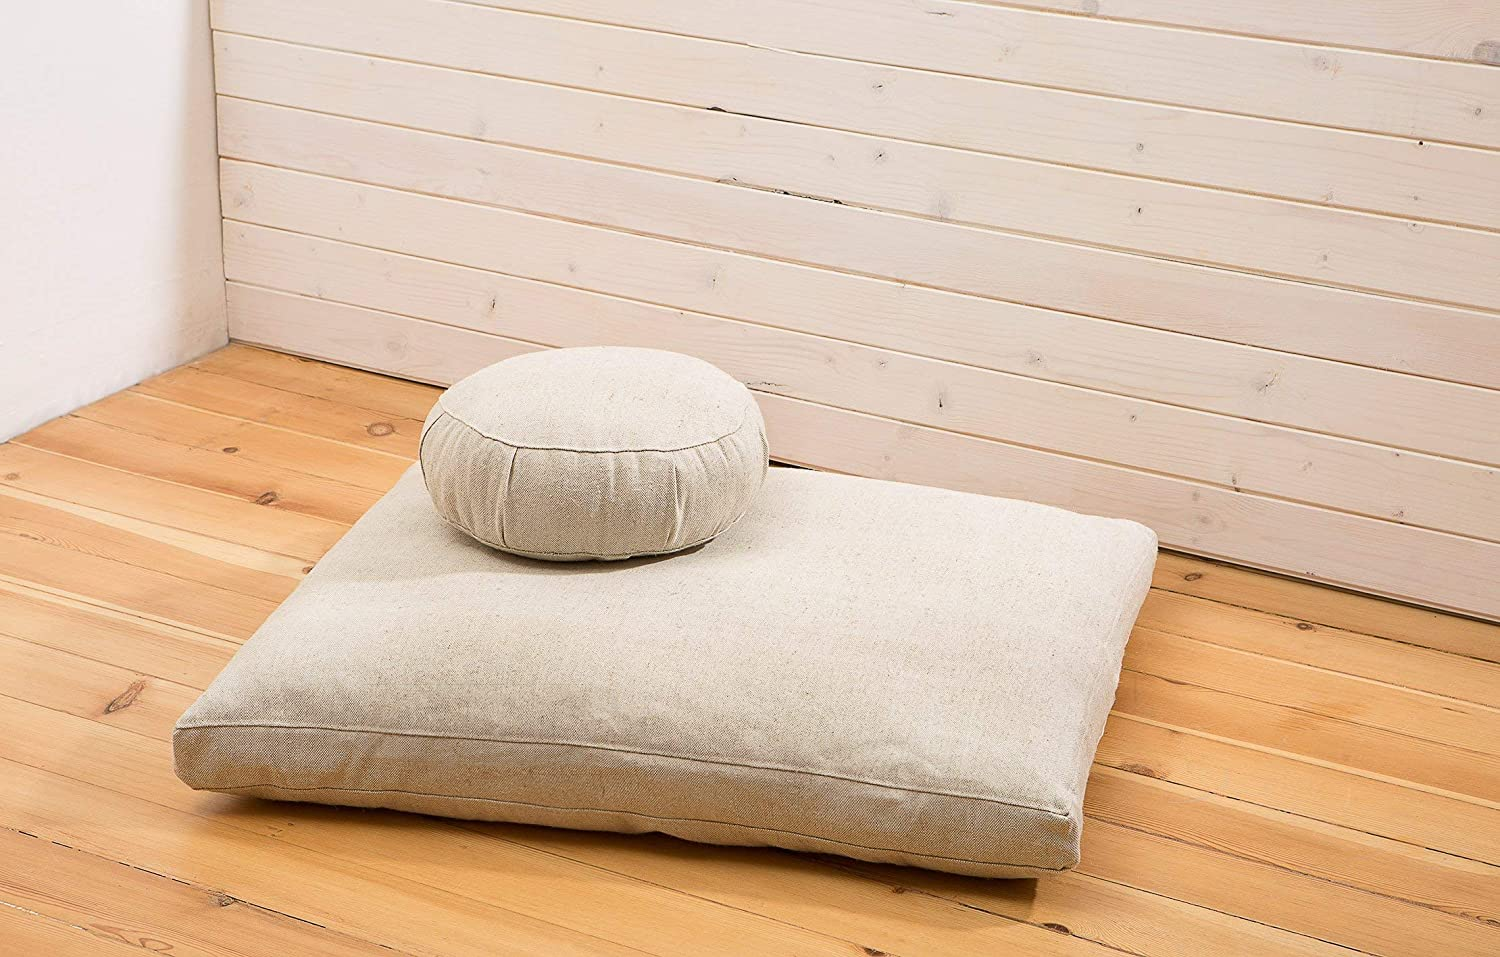 Home of Wool/Wool Meditation Set/Zafu and Zabuton/Non-Toxic Meditation Cushions/Oeko-Tex Certified Filling